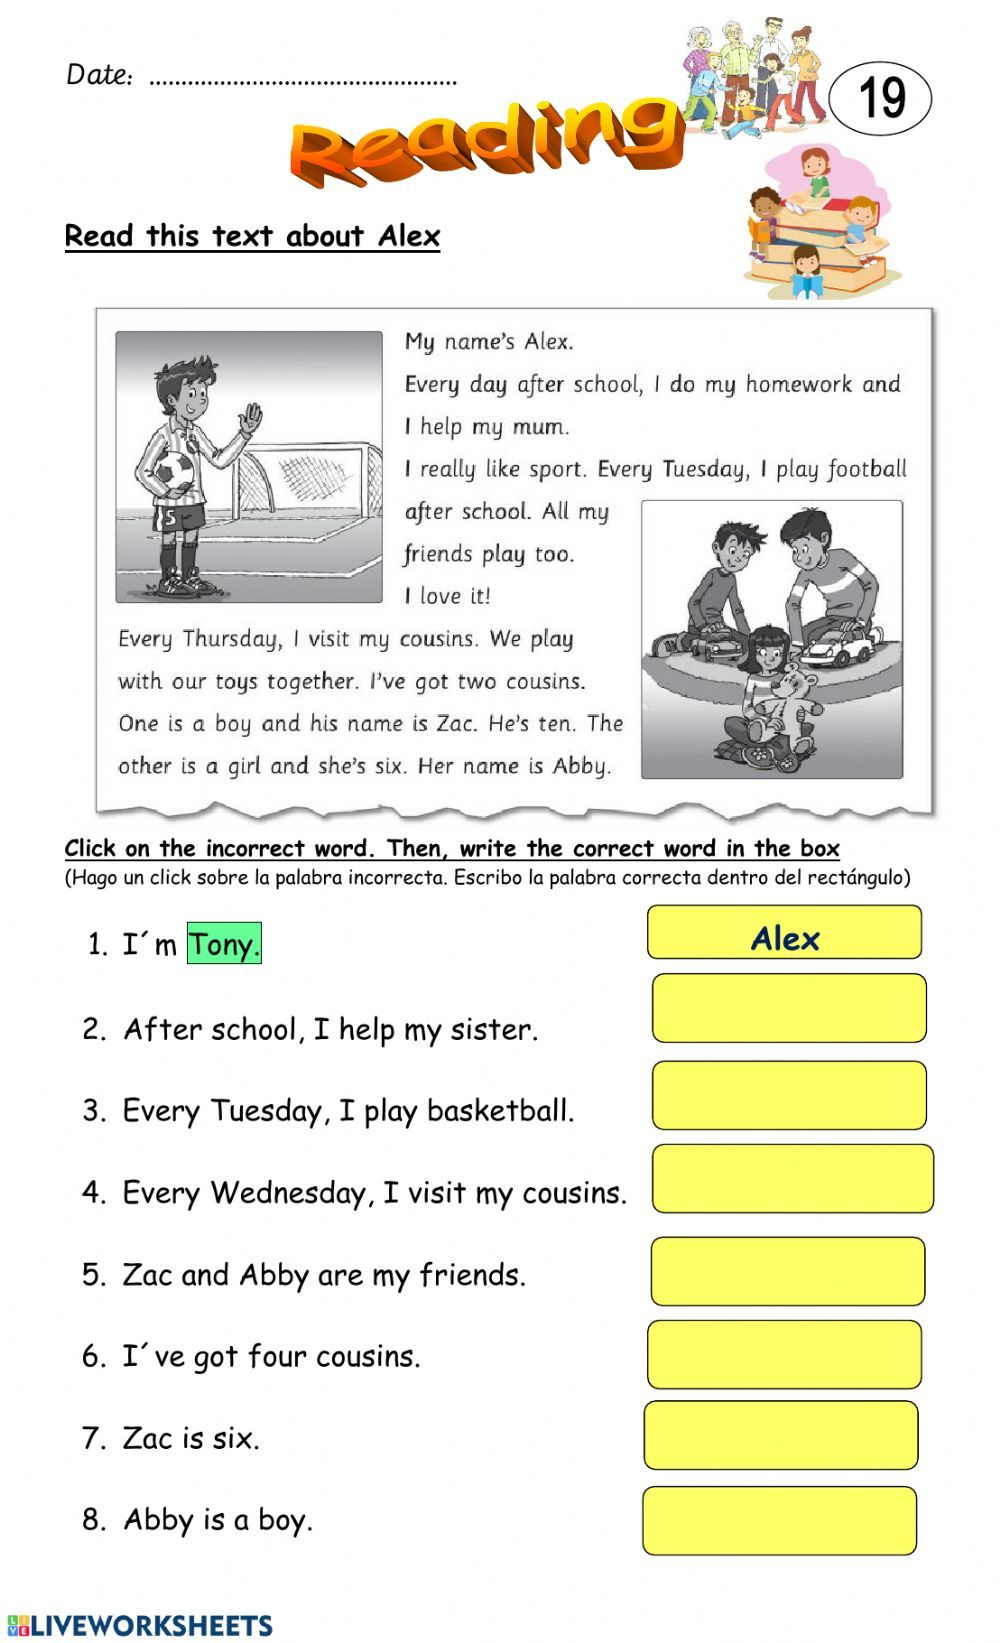 Reading comprehension interactive and downloadable